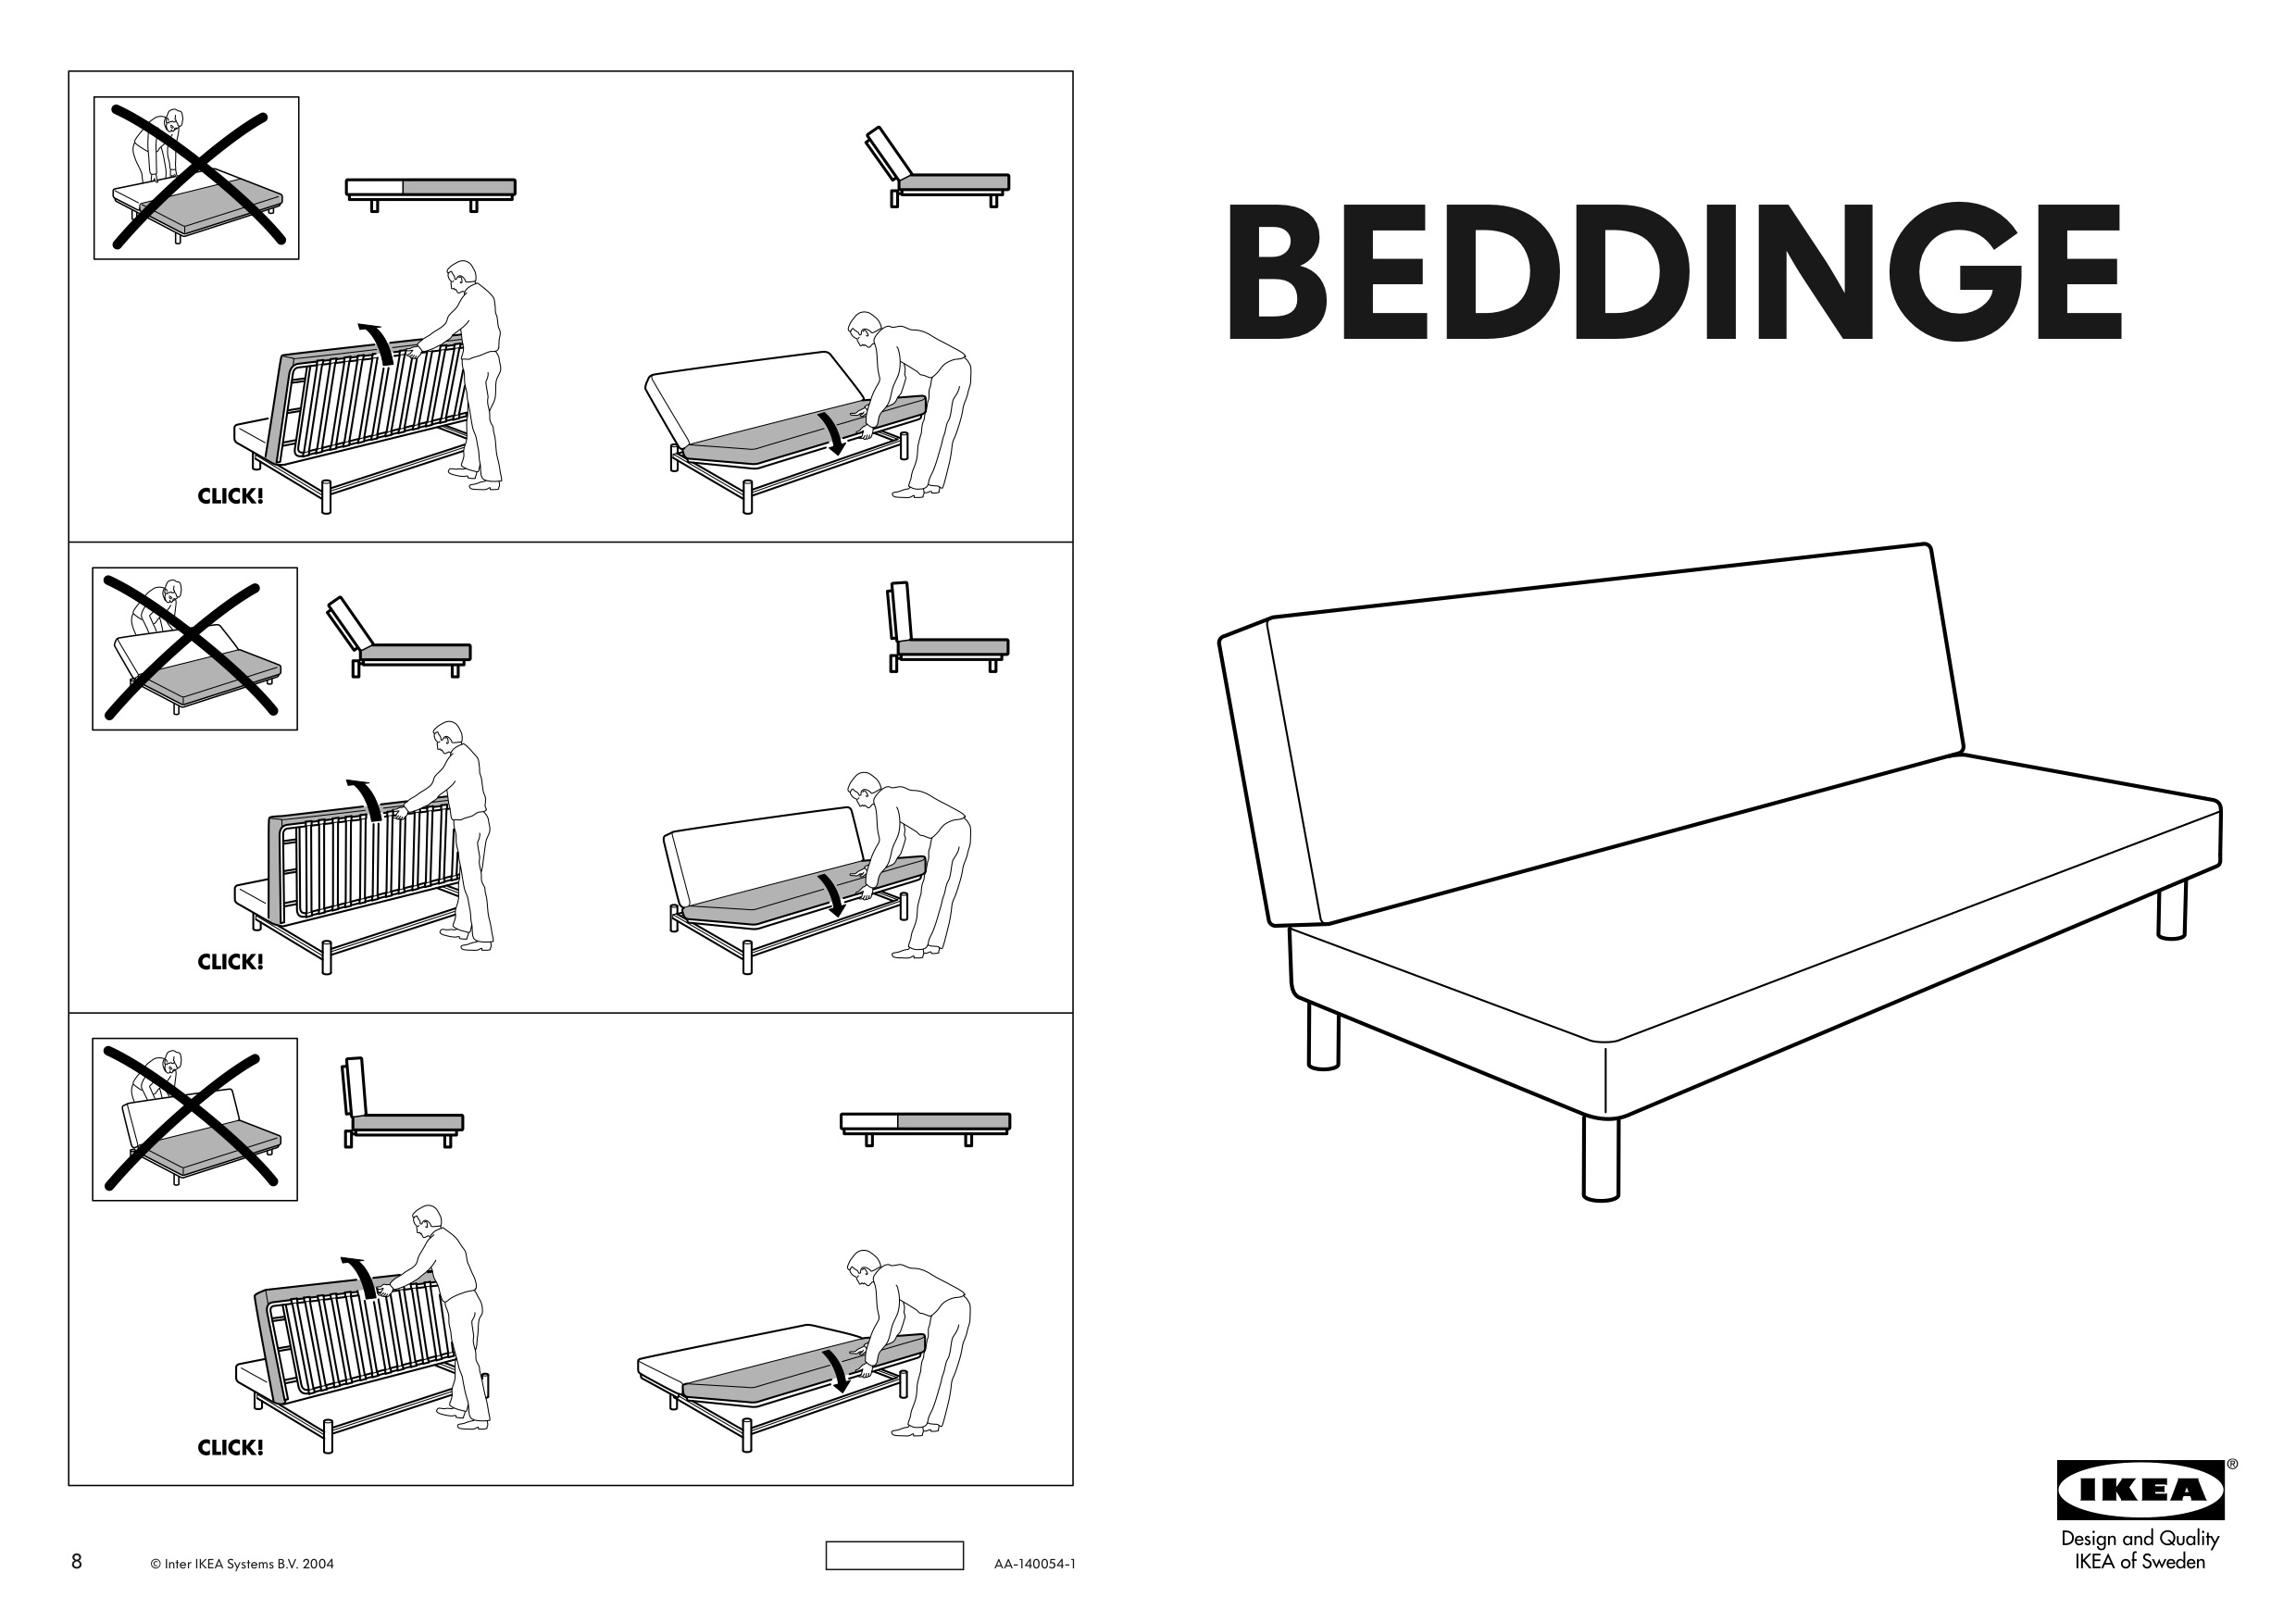 handleiding ikea beddinge slaapbank. Black Bedroom Furniture Sets. Home Design Ideas